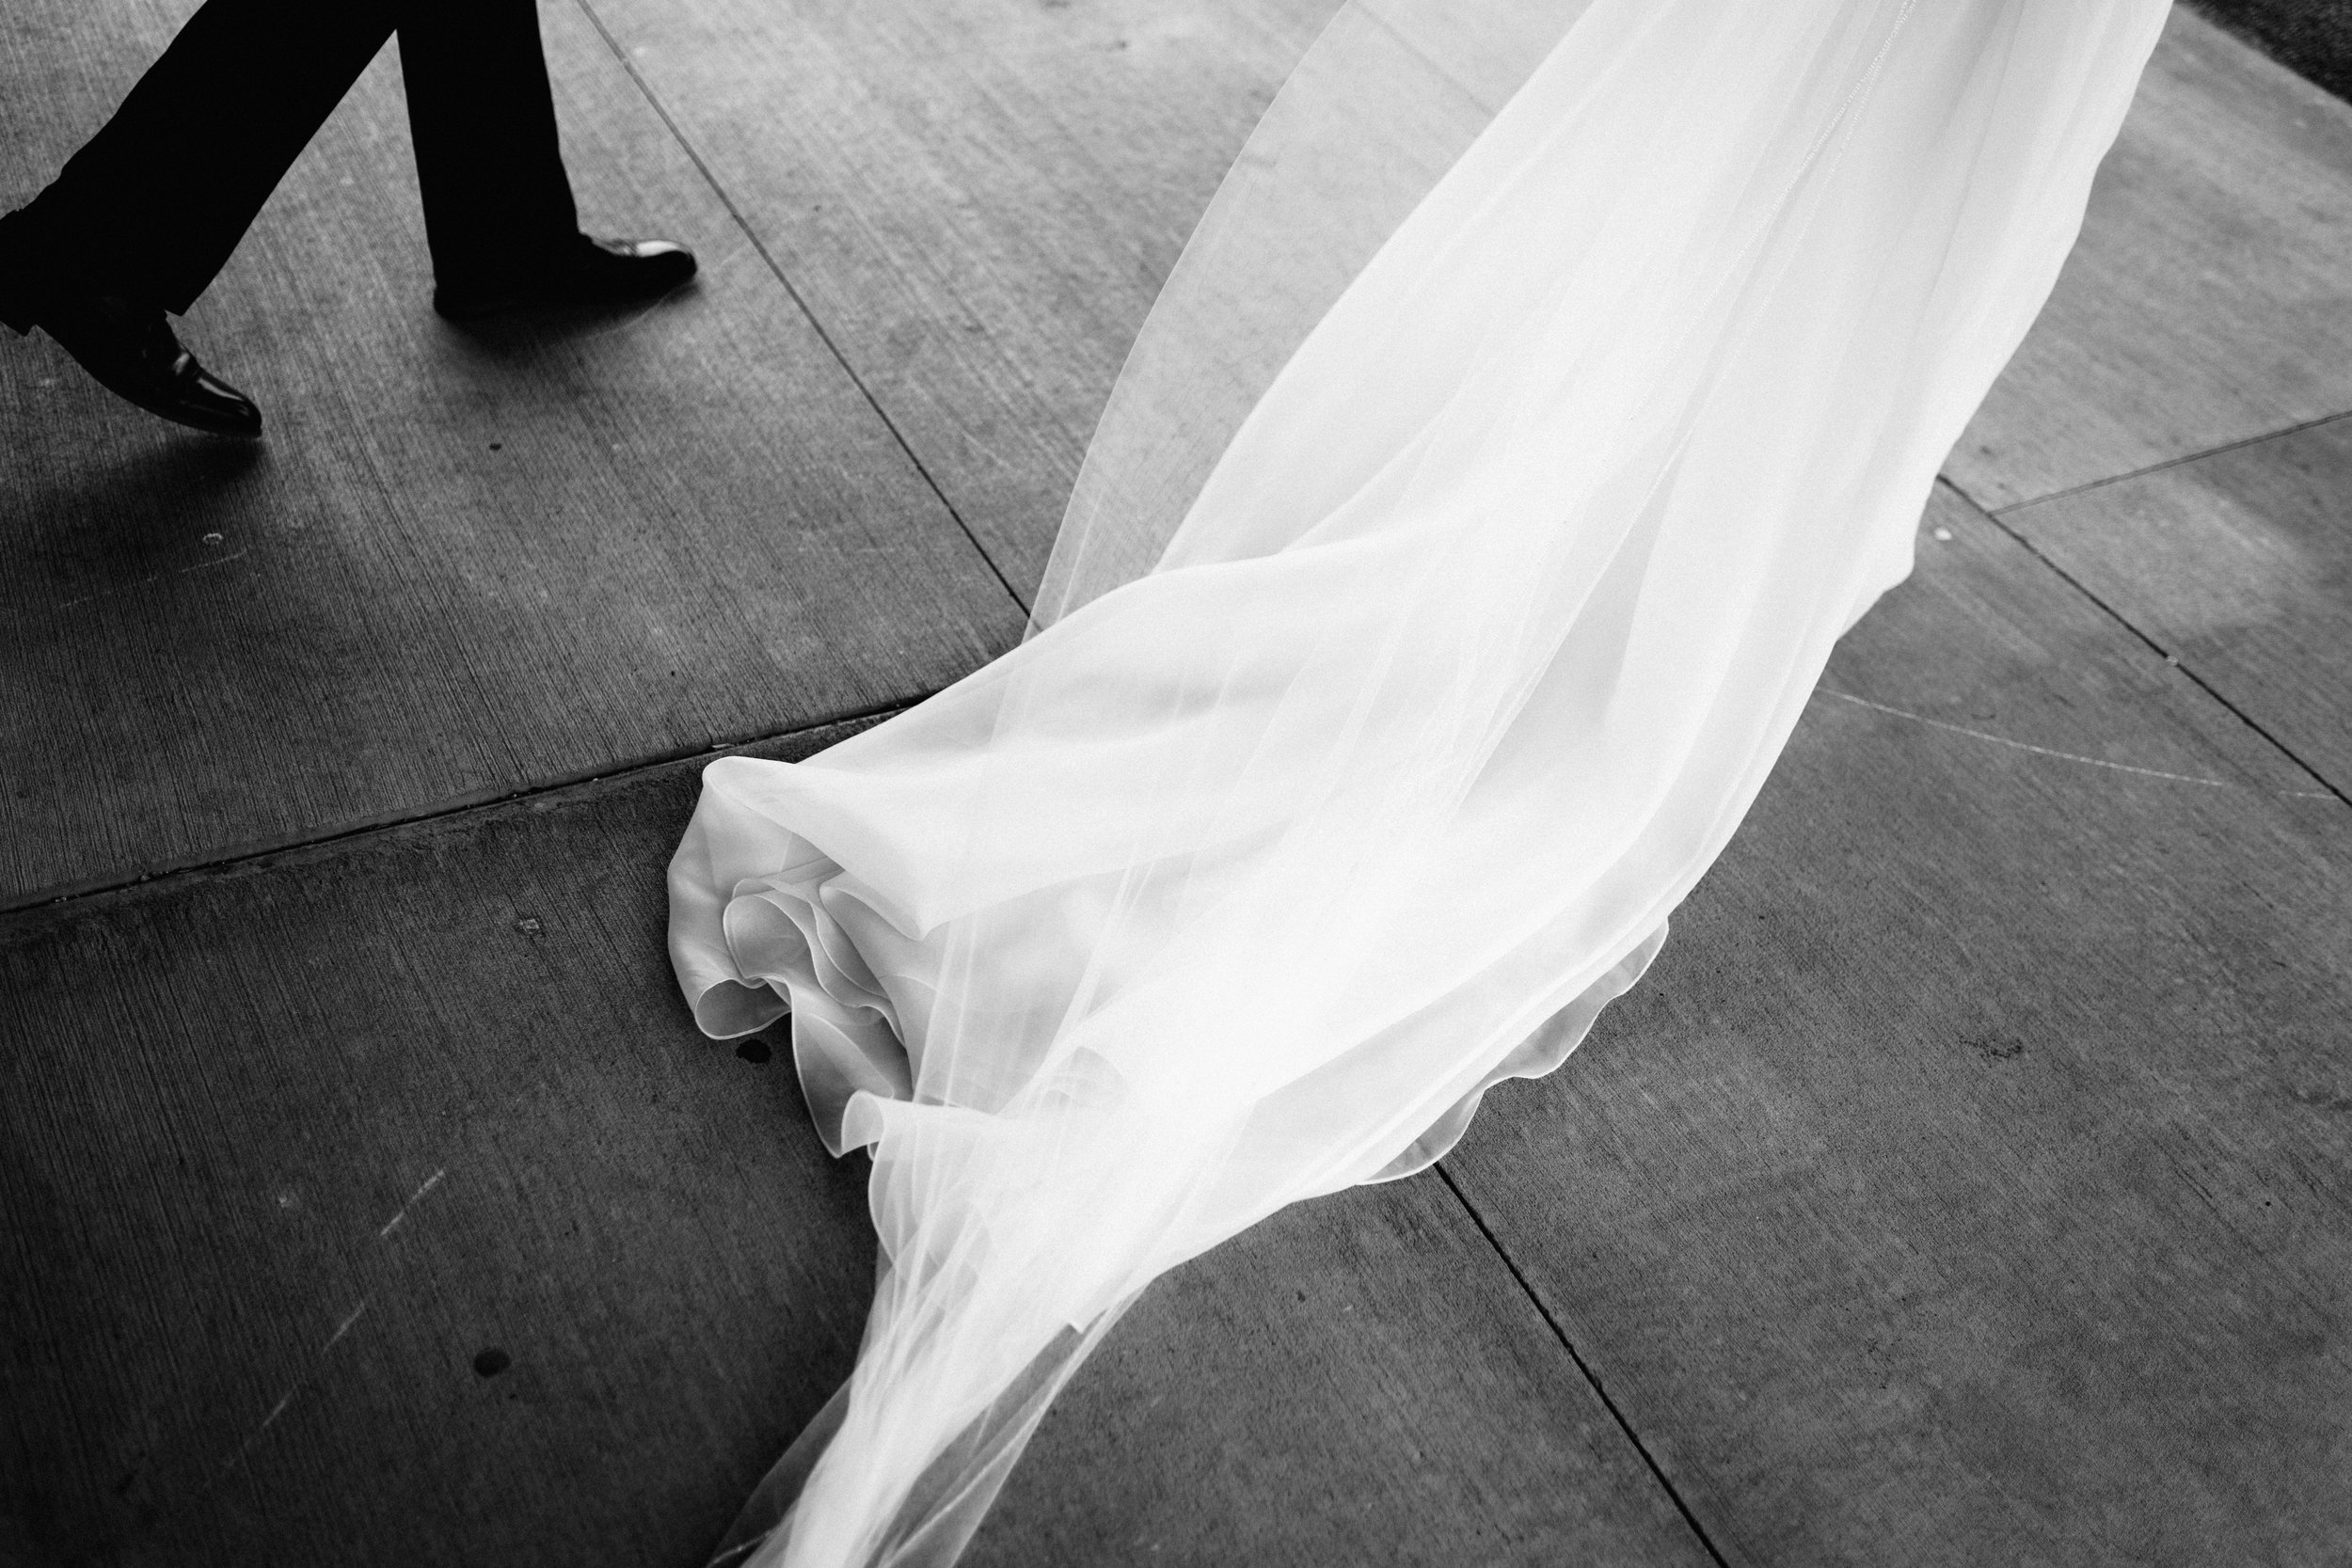 Shadow-Shine-Pictures-Taryn-Zak-Grand-Rapids-Wedding-Trailer-Photography-Previews-36.jpg